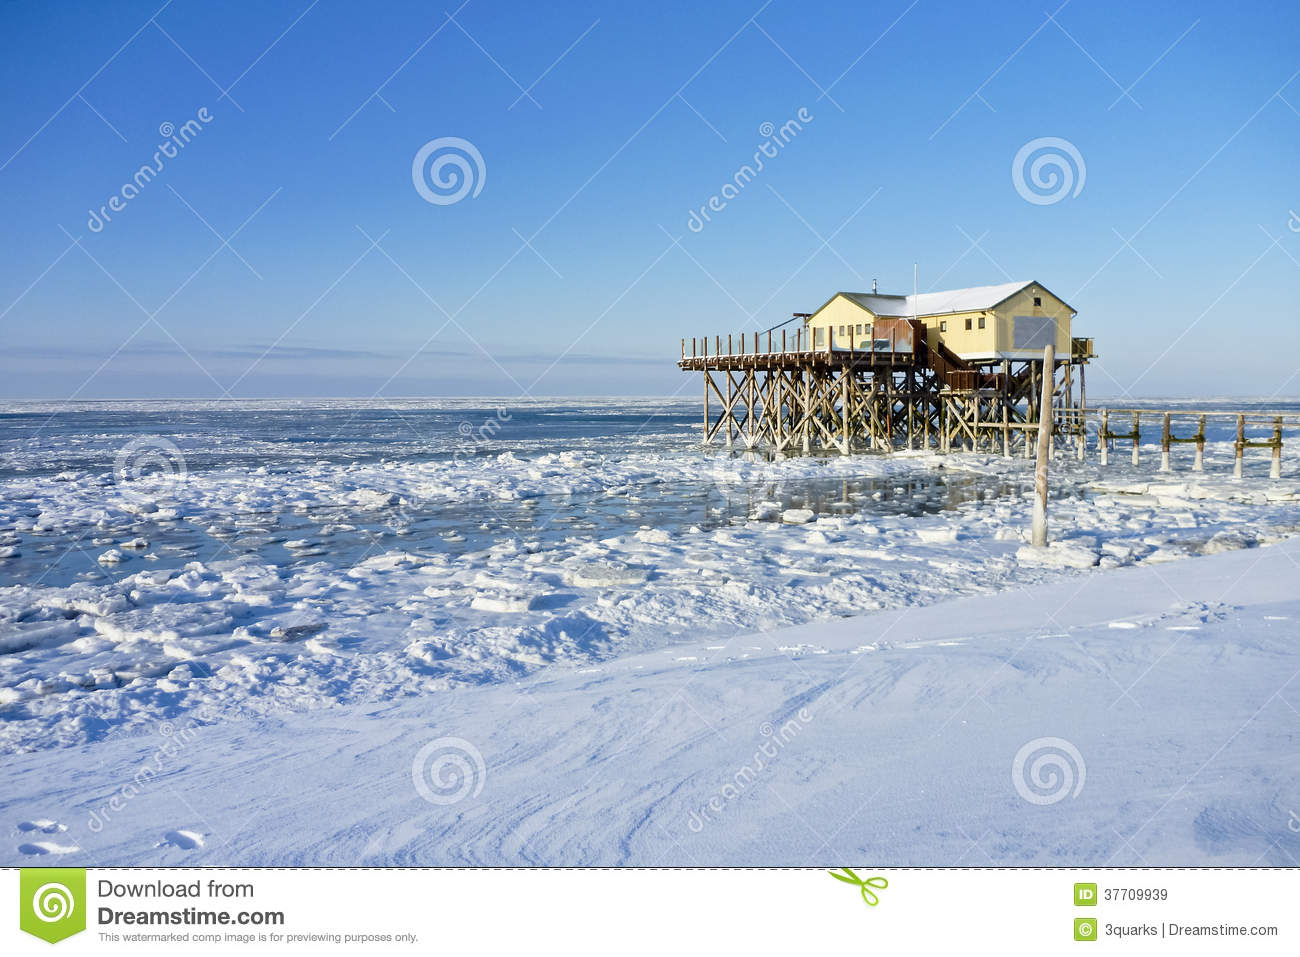 strand von st peter ording im winter stockbild bild von blatt eisig 37709939. Black Bedroom Furniture Sets. Home Design Ideas